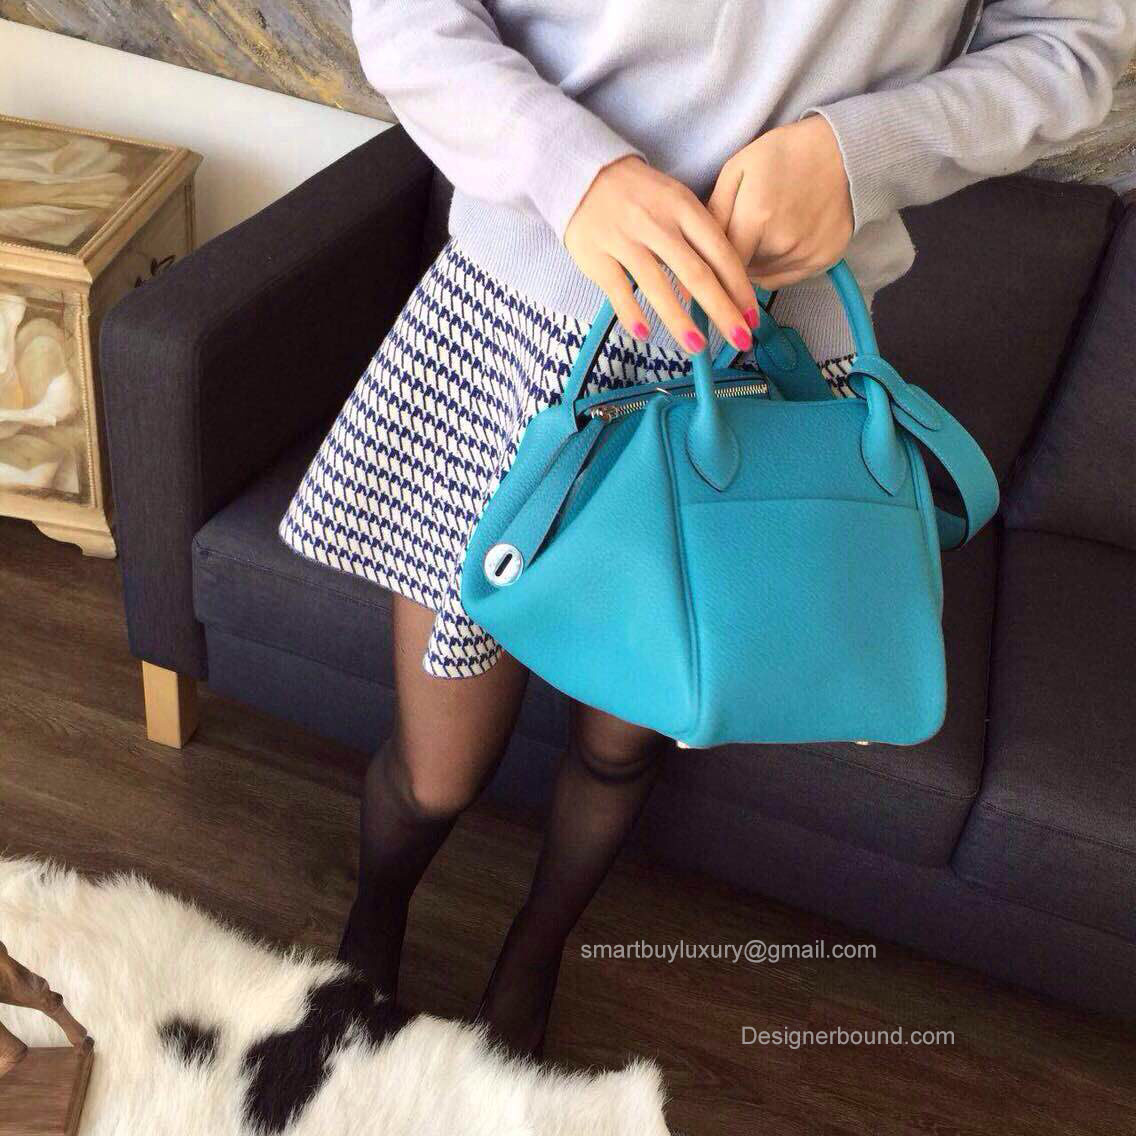 b061db1744e1 ... usa hermes lindy 30 bag in 7b blue turquoise clemence leather  handstitched b075b 74625